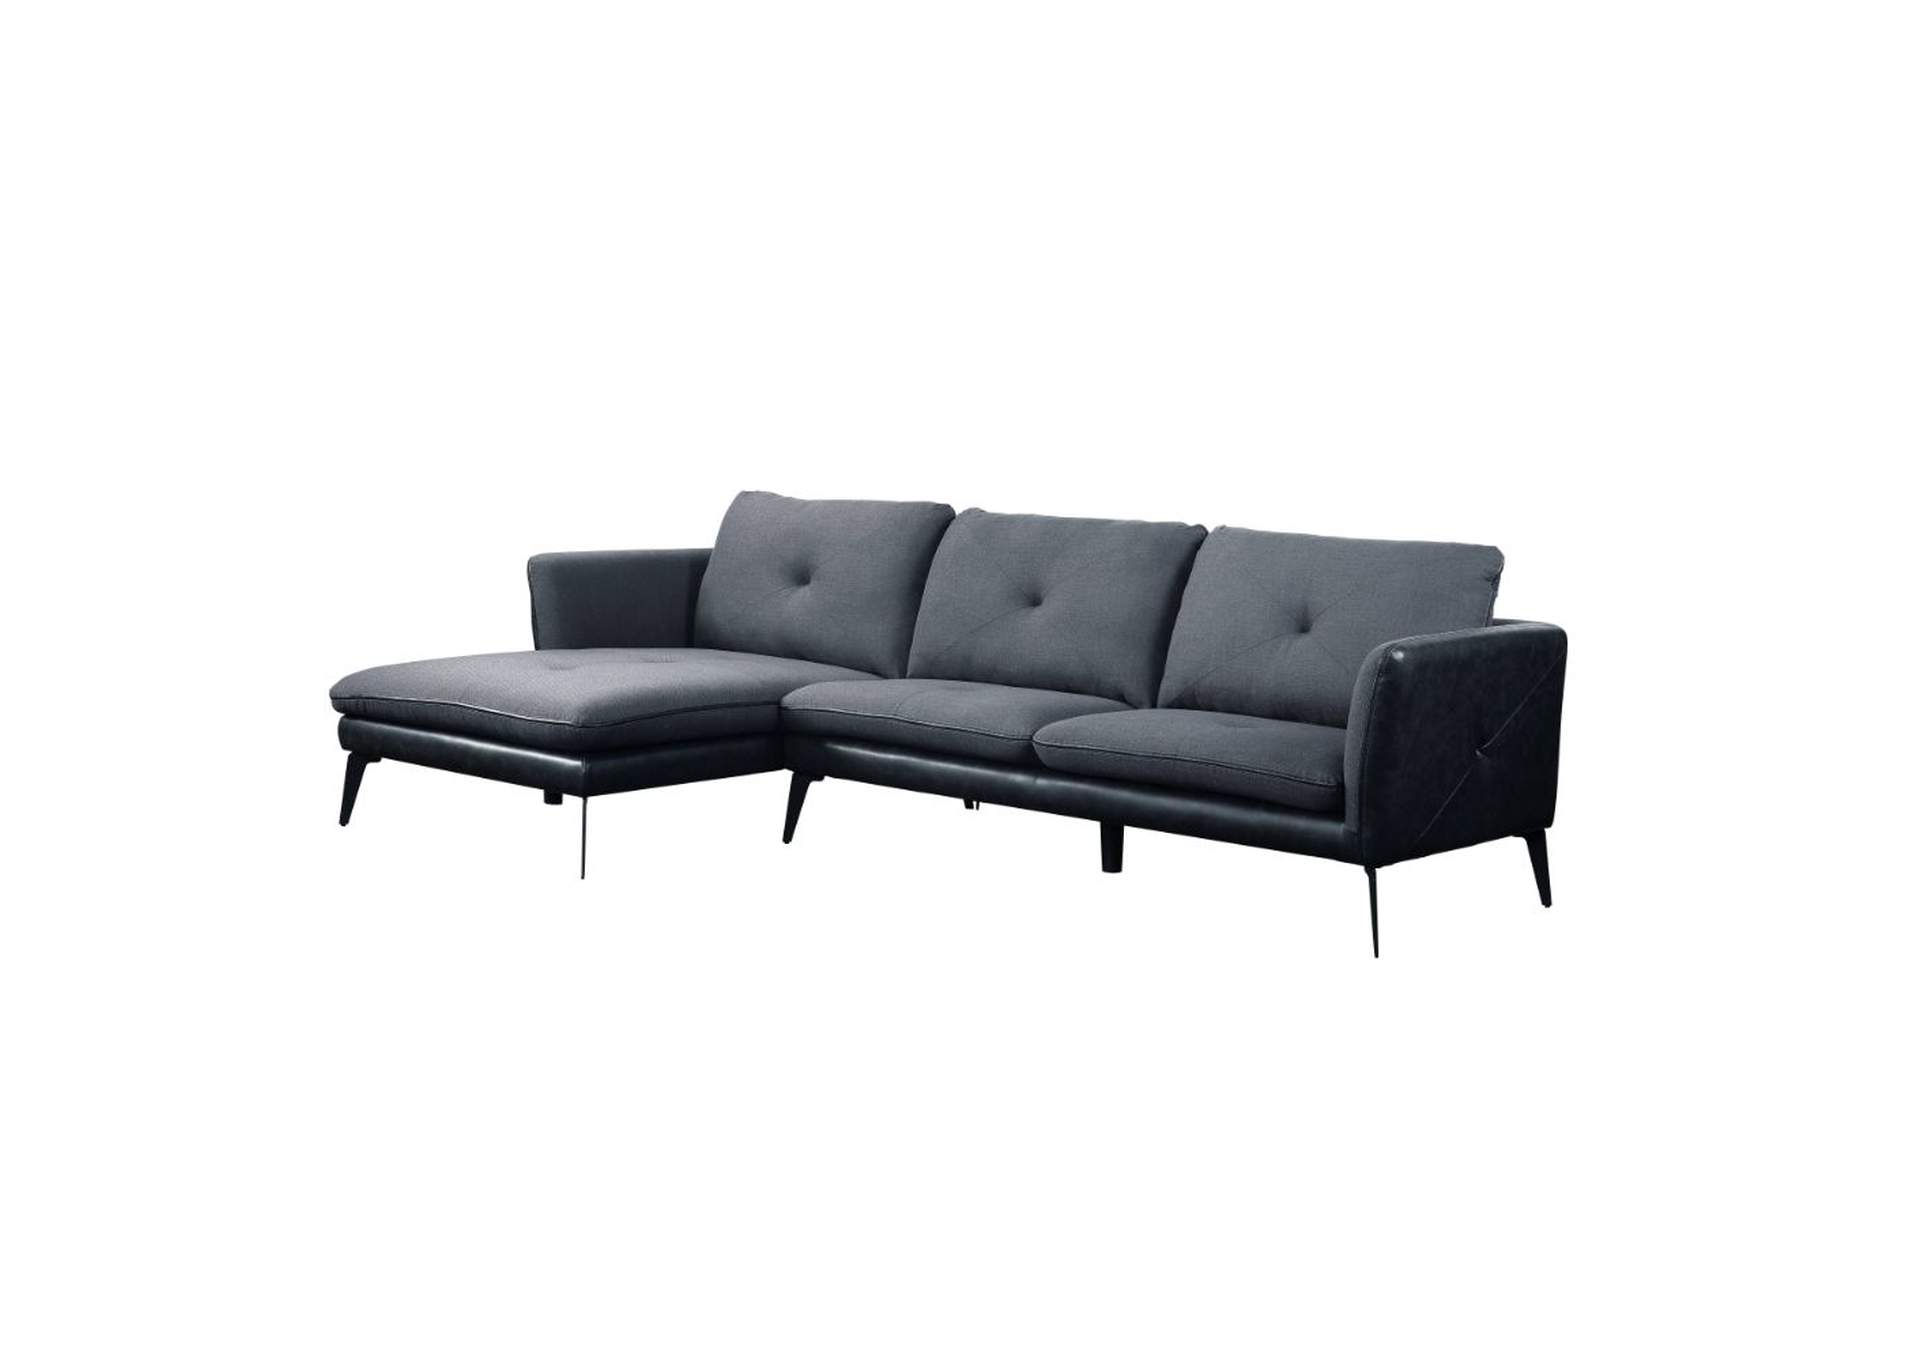 Harun Gray Sectional Sofa,Acme